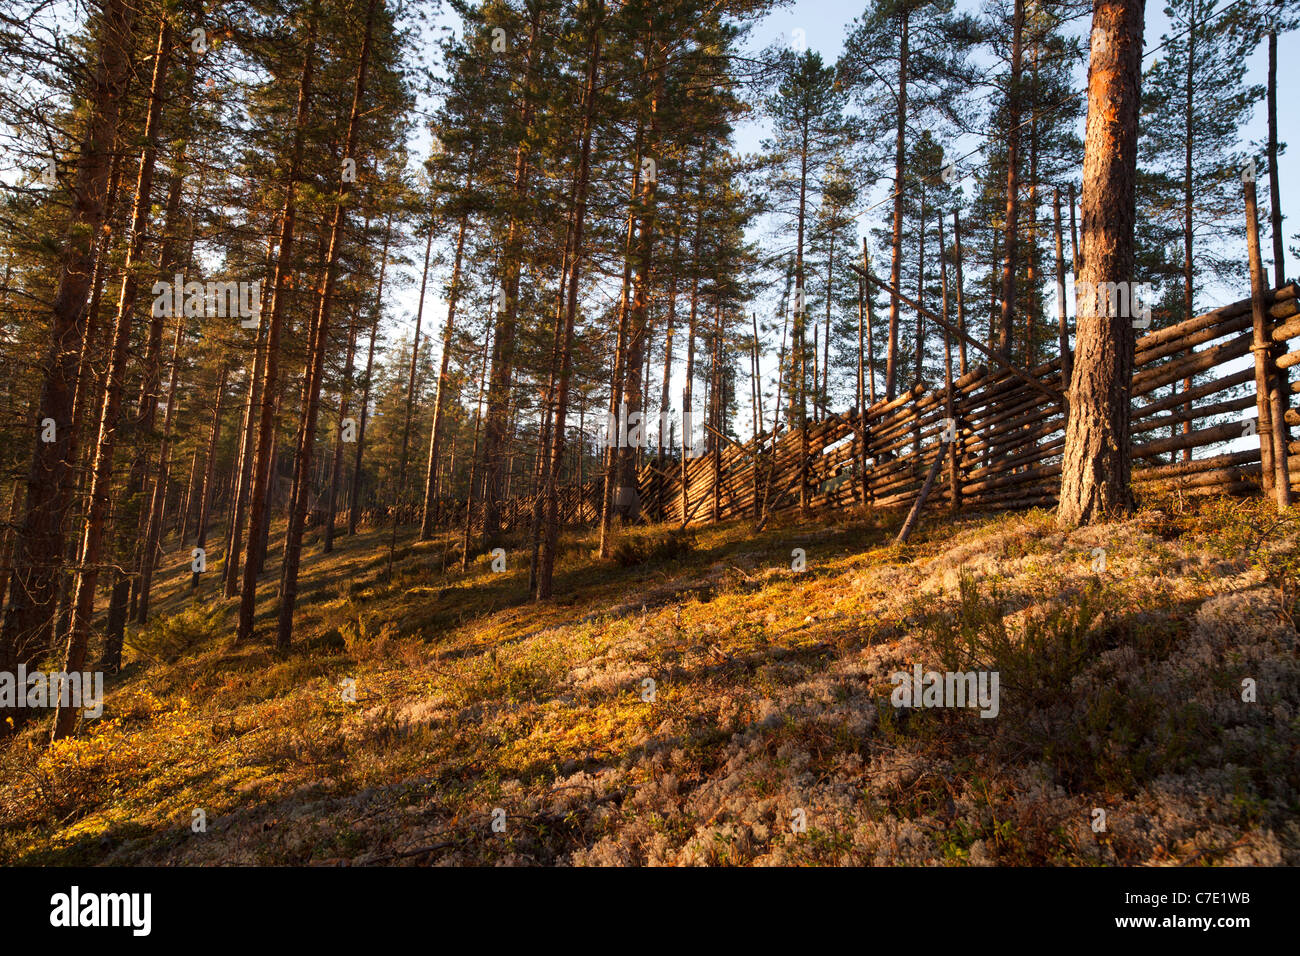 Young pine ( pinus sylvestris ) forest growing on a dry esker ridge and traditional wooden pole fence , Finland - Stock Image